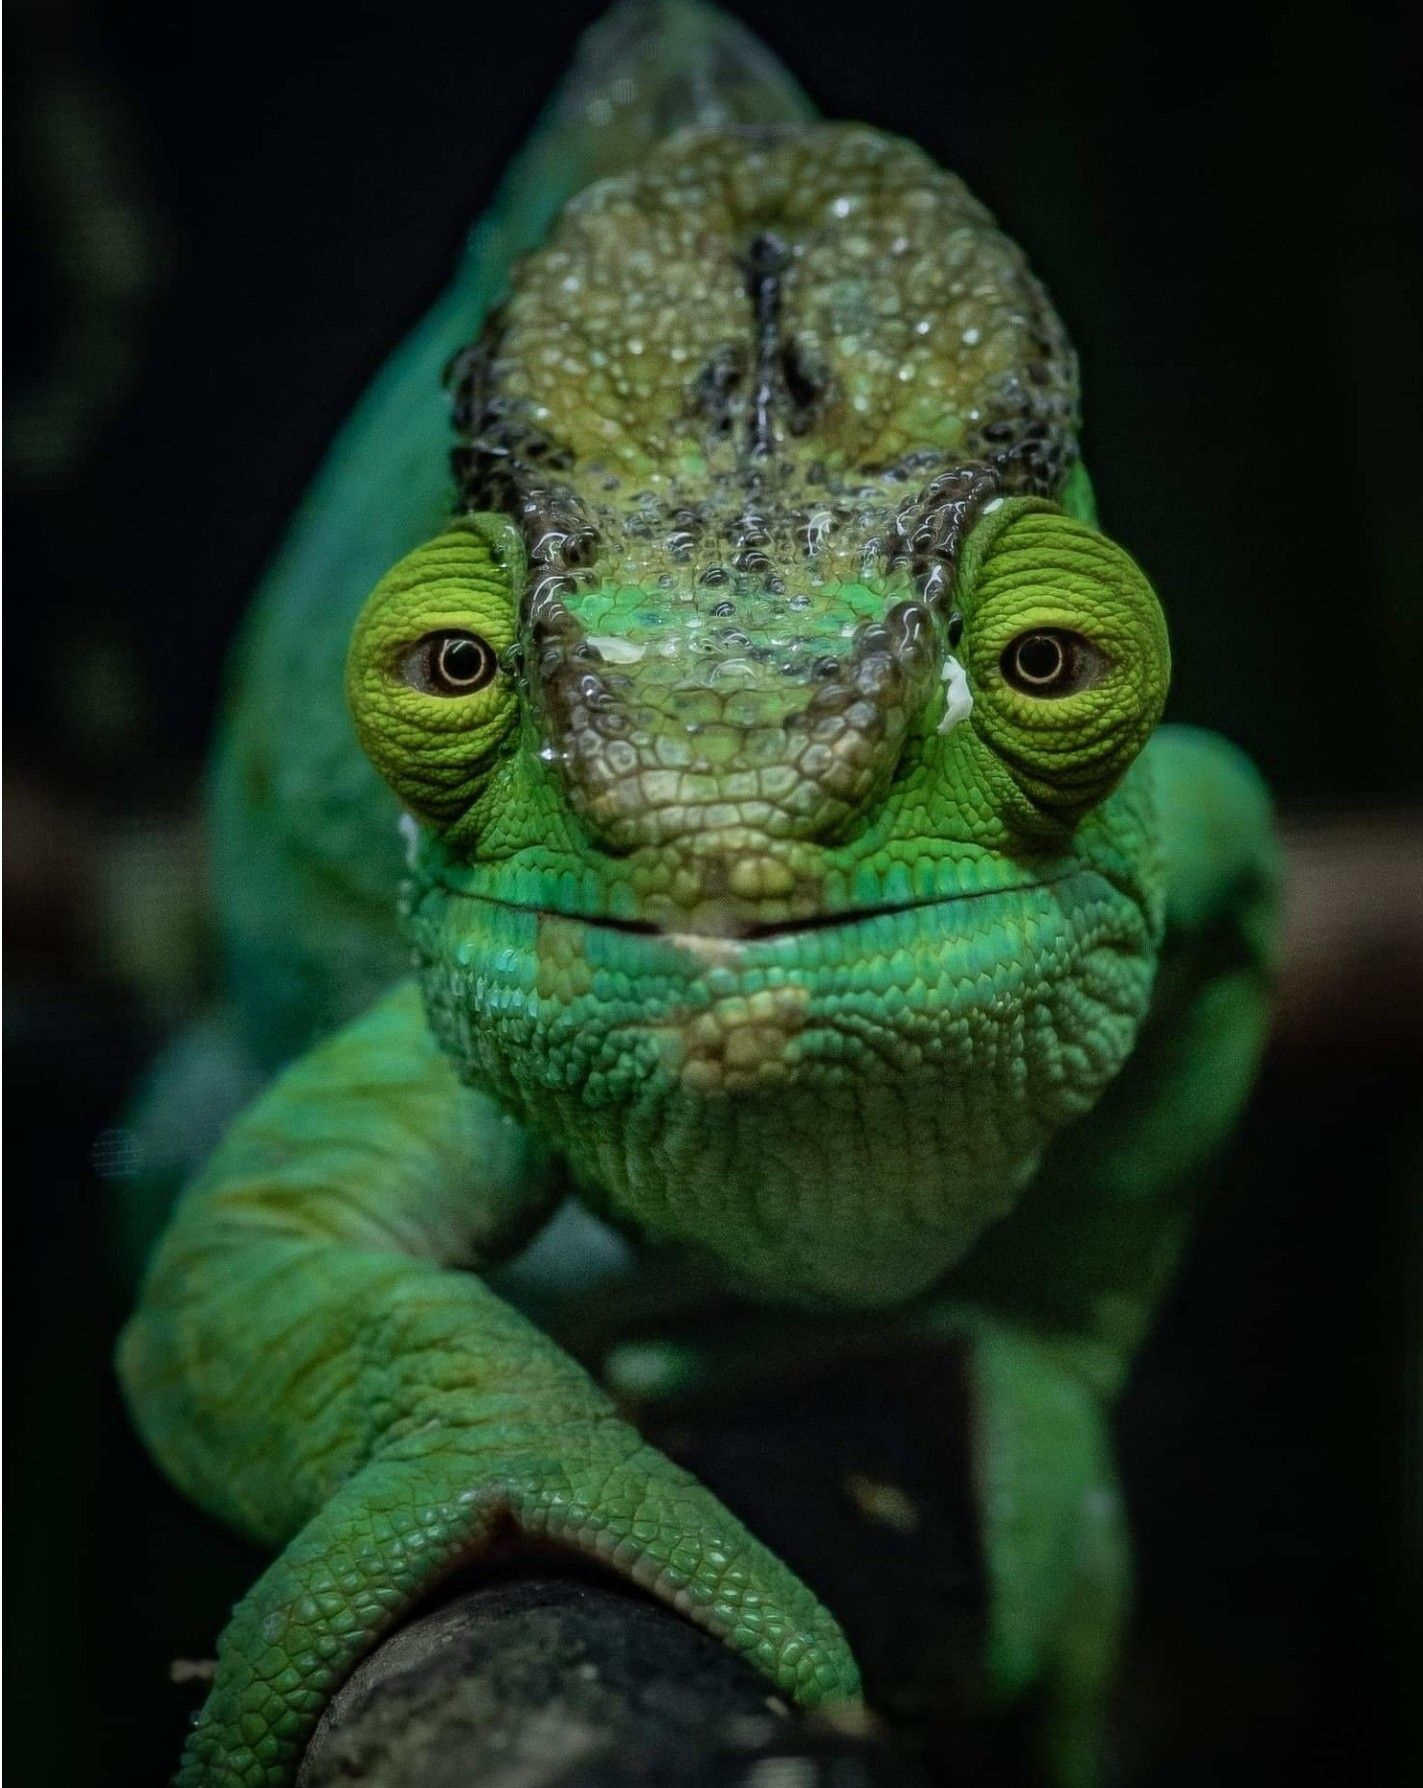 Animal Qui Change De Couleur : animal, change, couleur, Bright, Green, Chameleon, Happy, Chester, Animals,, Animal, Pictures